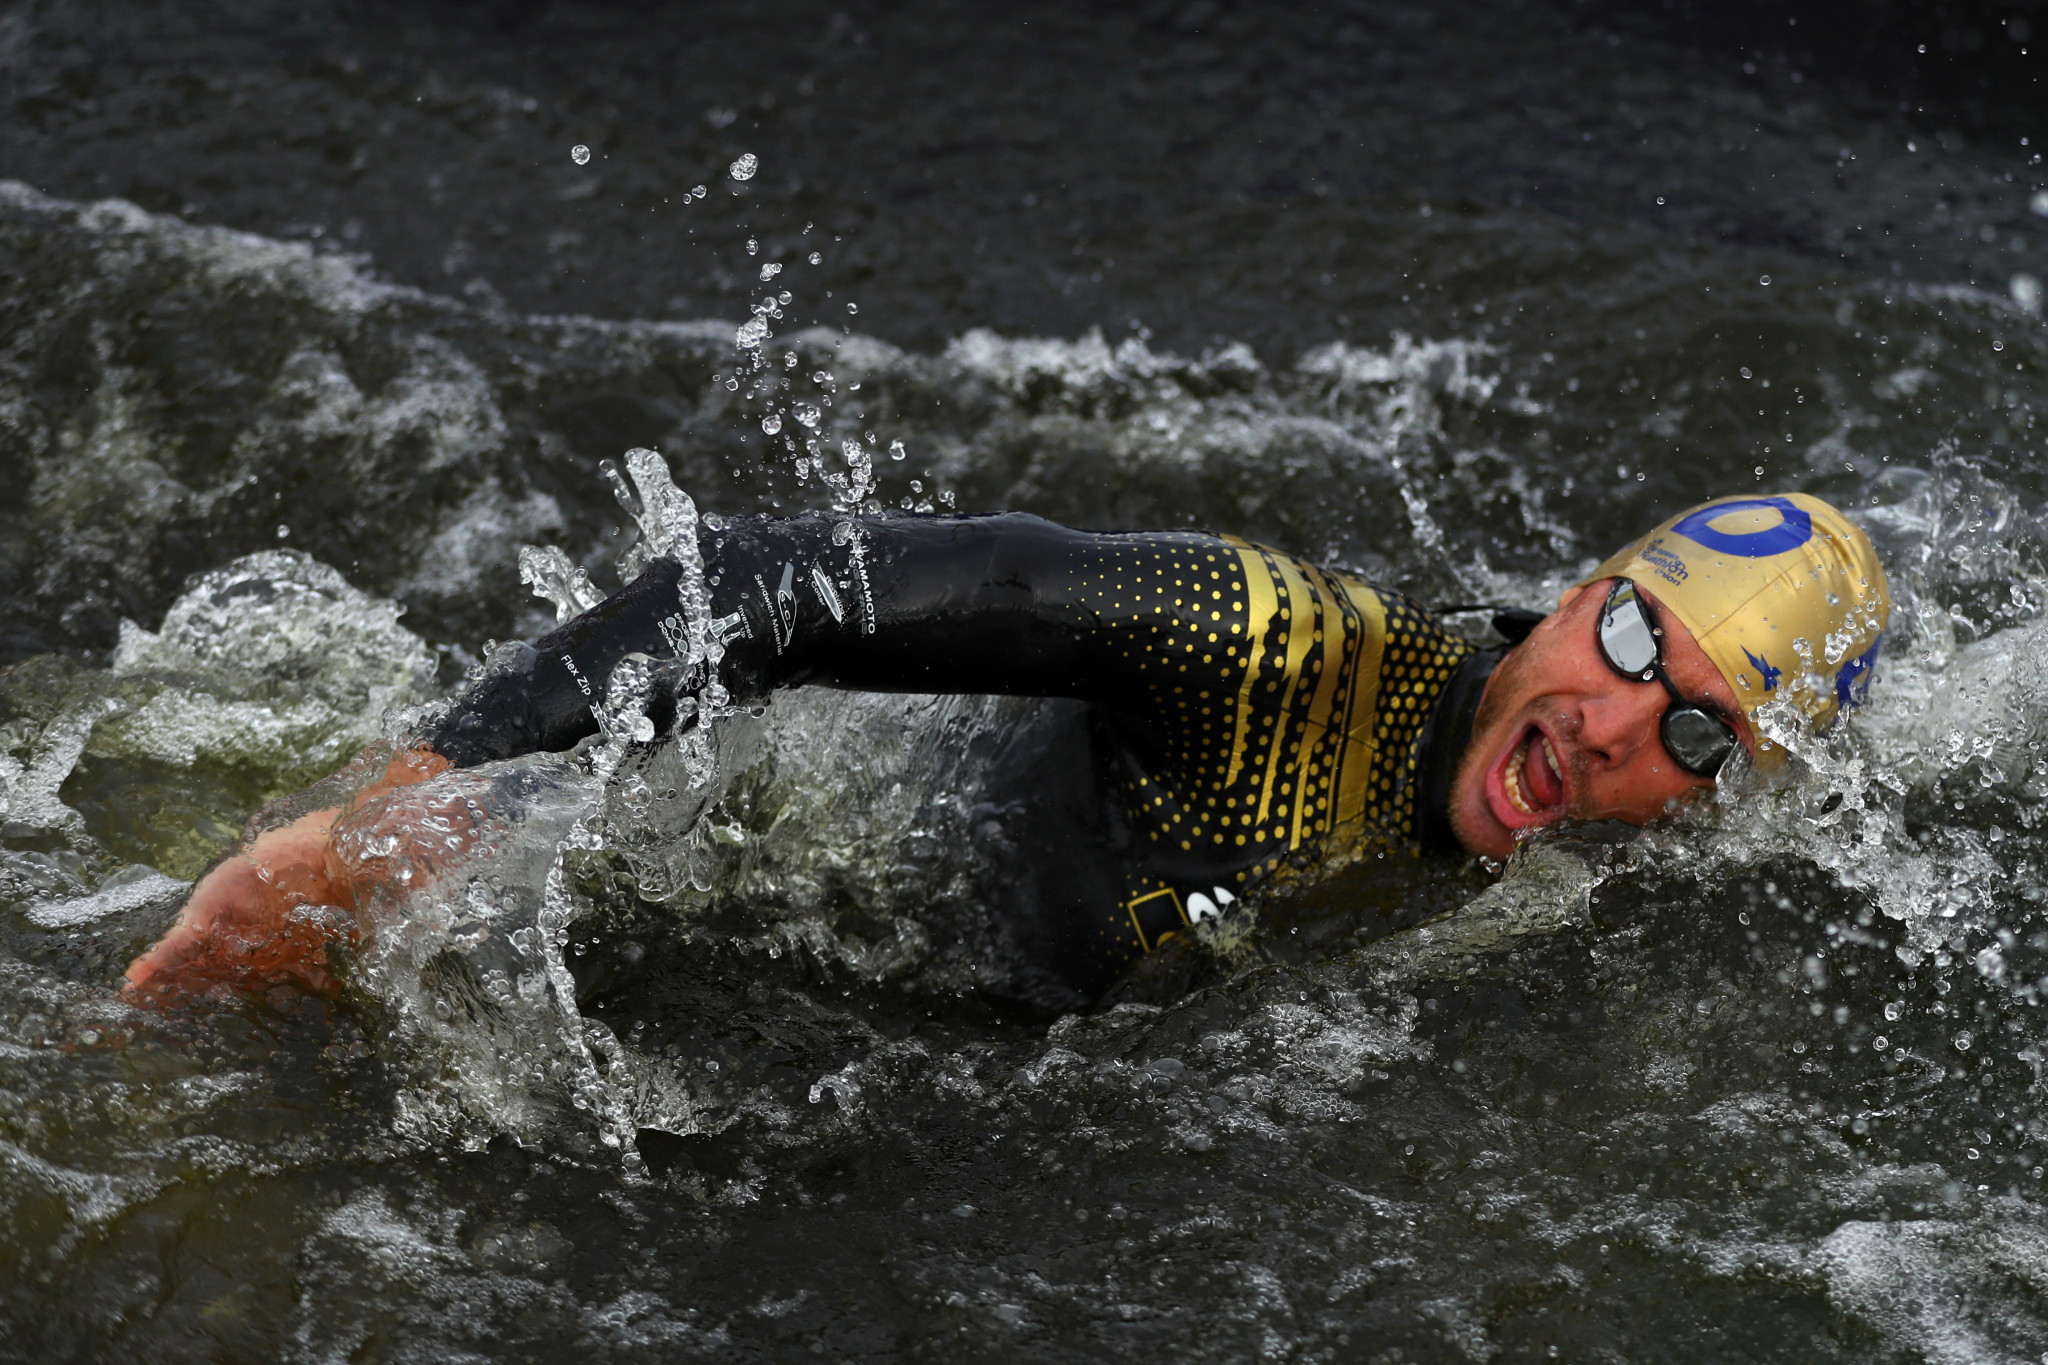 Dorian Coninx completed the last leg of the race for France ©Getty Images